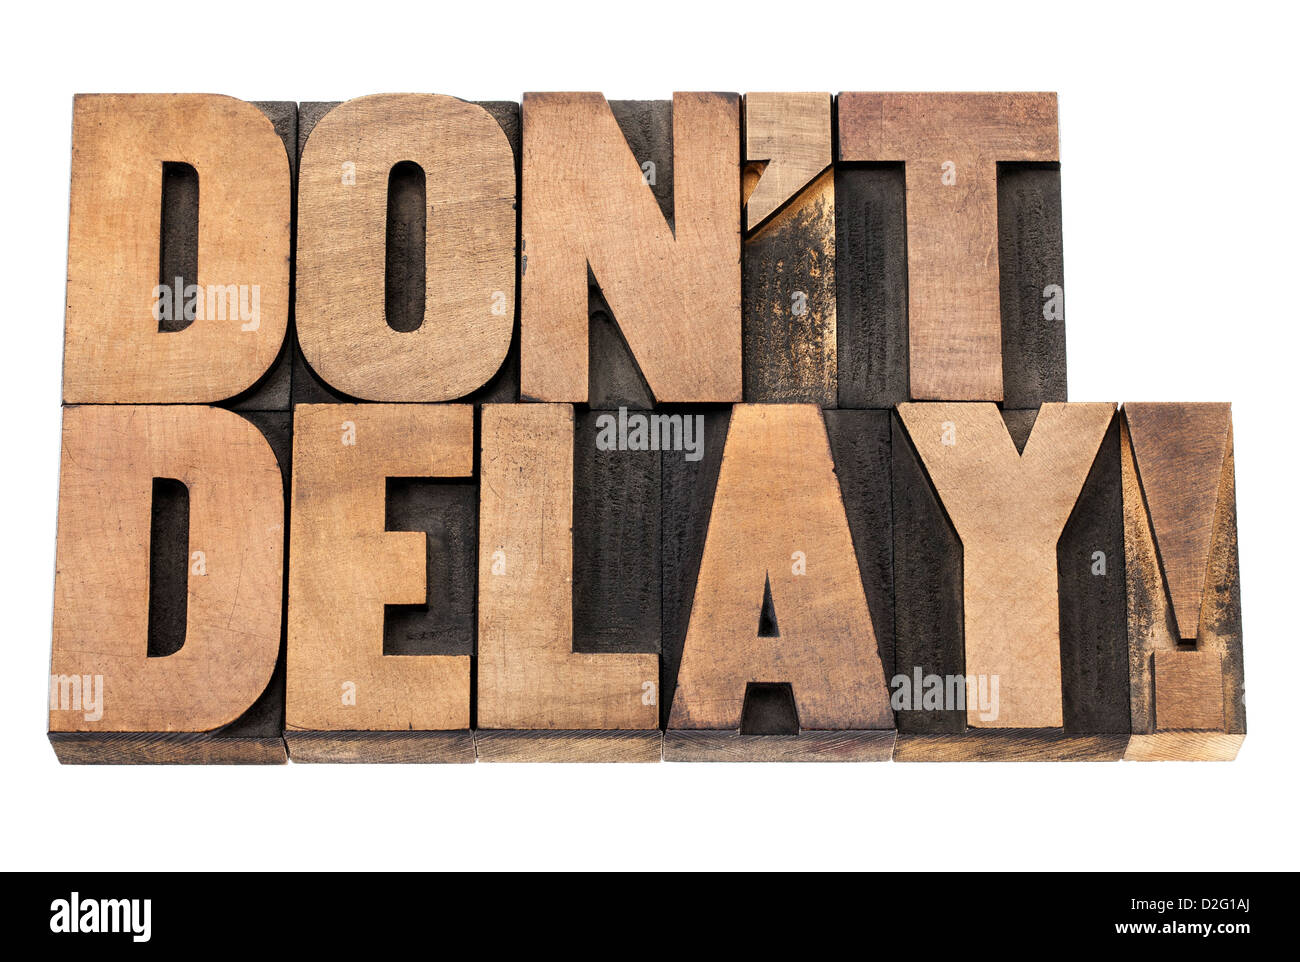 do not delay exclamation - procrastination concept - isolated text in vintage letterpress wood type printing blocks - Stock Image